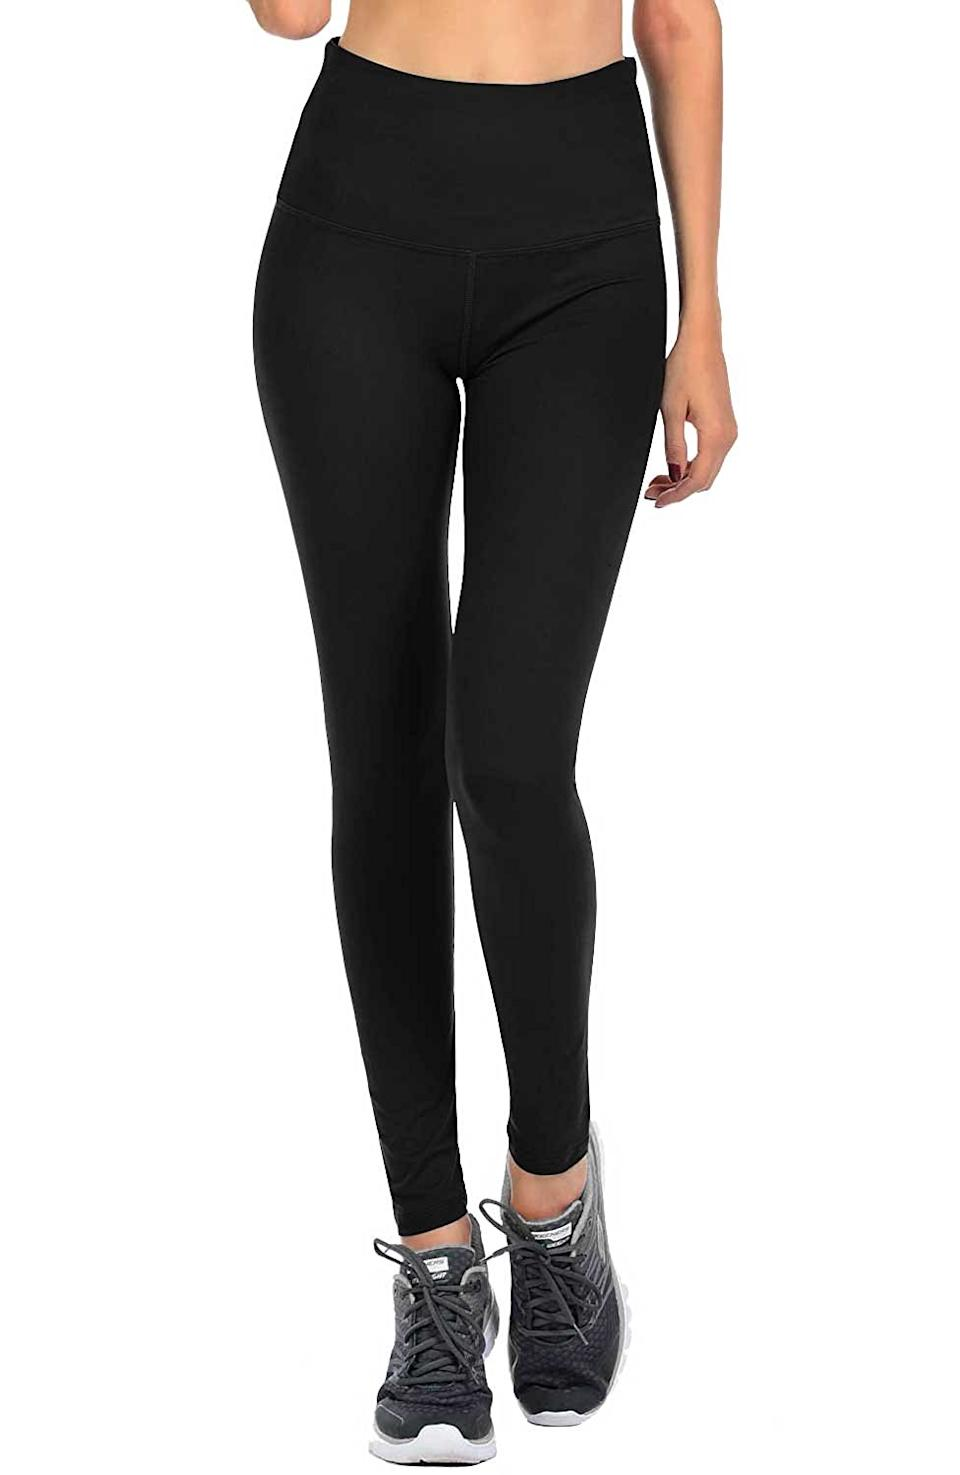 """<strong><h3>Viv Collection: The """"One Size Fits All"""" Legging</h3></strong> <br>This pair comes in only two sizes and a whole host of positive reviews. You can choose from the regular size which fits sizes 0 through 12, or the plus size which fits sizes 14 through 24.<br><br><strong>The hype:</strong> 4.3 out of 5 stars and 4,227 reviews on Amazon<br><br><strong>What they're saying:</strong> """"I think after purchasing 6 pairs of these it's time to offer some feedback on them. These leggings are amazing!!! I held off on trying them for such a long time and wish I would of gotten them sooner!! They are soft and feel great. Even better than the ones ppl sell on Facebook!! Some ppl don't like the waistband but their yoga leggings have the wide waistband made of fabric is the elastic one is not your thing. They hold up well even after several washes. I never got a defective pair and I own 6 so far. Most are solid colored ones. I haven't gotten random holes in them. They even withstood my kittens digging their nails into them. Which for me is the ultimate test LOL. Seriously though, they're inexpensive, fit great (I got the regular fit not plus) and have a huge selection of colors and prints to choose from. For reference I have thick legs and thighs and usually wear M or L (depending on manufacturers) leggings. I've recommended these to a lit if ppl on social media and they all loved them..."""" - LC78, Amazon Review<br><br><strong>Viv Collection</strong> Soft Leggings, $, available at <a href=""""https://www.amazon.com/VIV-Collection-Leggings-Waistband-Pocket/dp/B07FPRW1LJ#locklink"""" rel=""""nofollow noopener"""" target=""""_blank"""" data-ylk=""""slk:Amazon"""" class=""""link rapid-noclick-resp"""">Amazon</a><br><br><br><br><br>"""